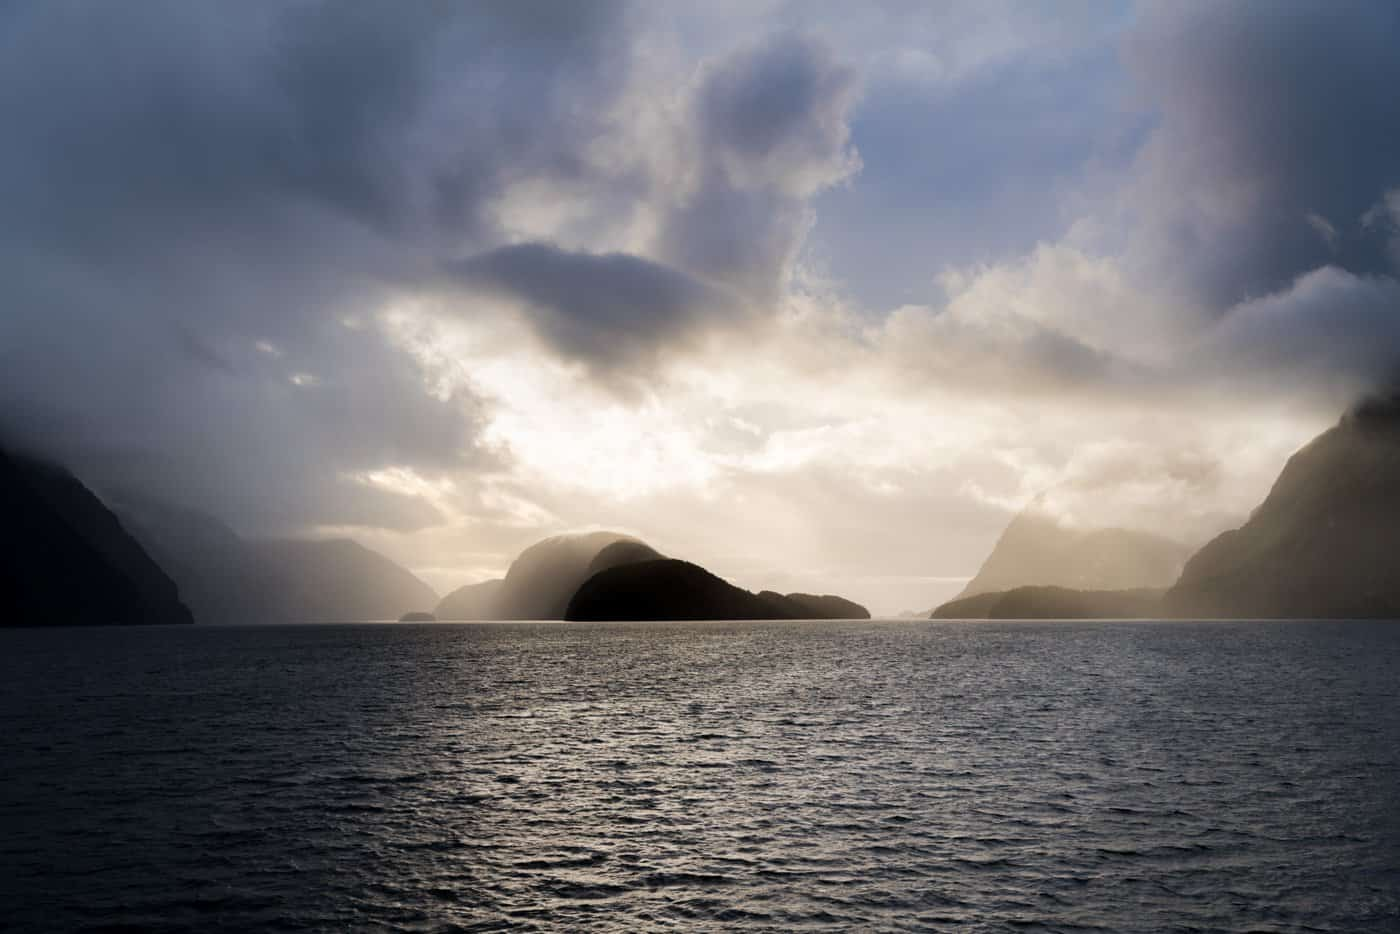 NZ Golden Hour landscape photography from the Doubtful Sound overnight cruise ship